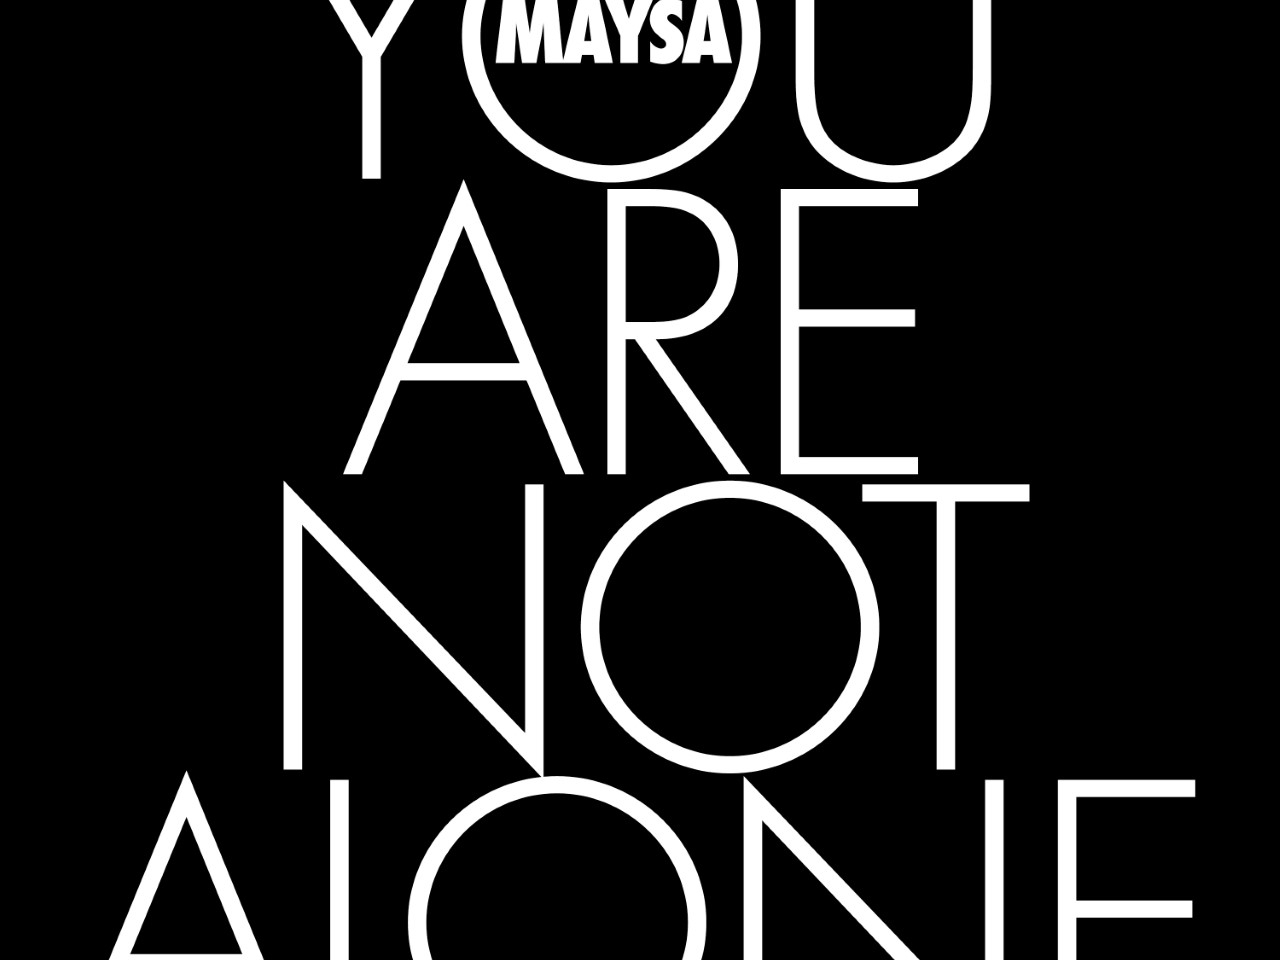 Maysa You Are Not Alone